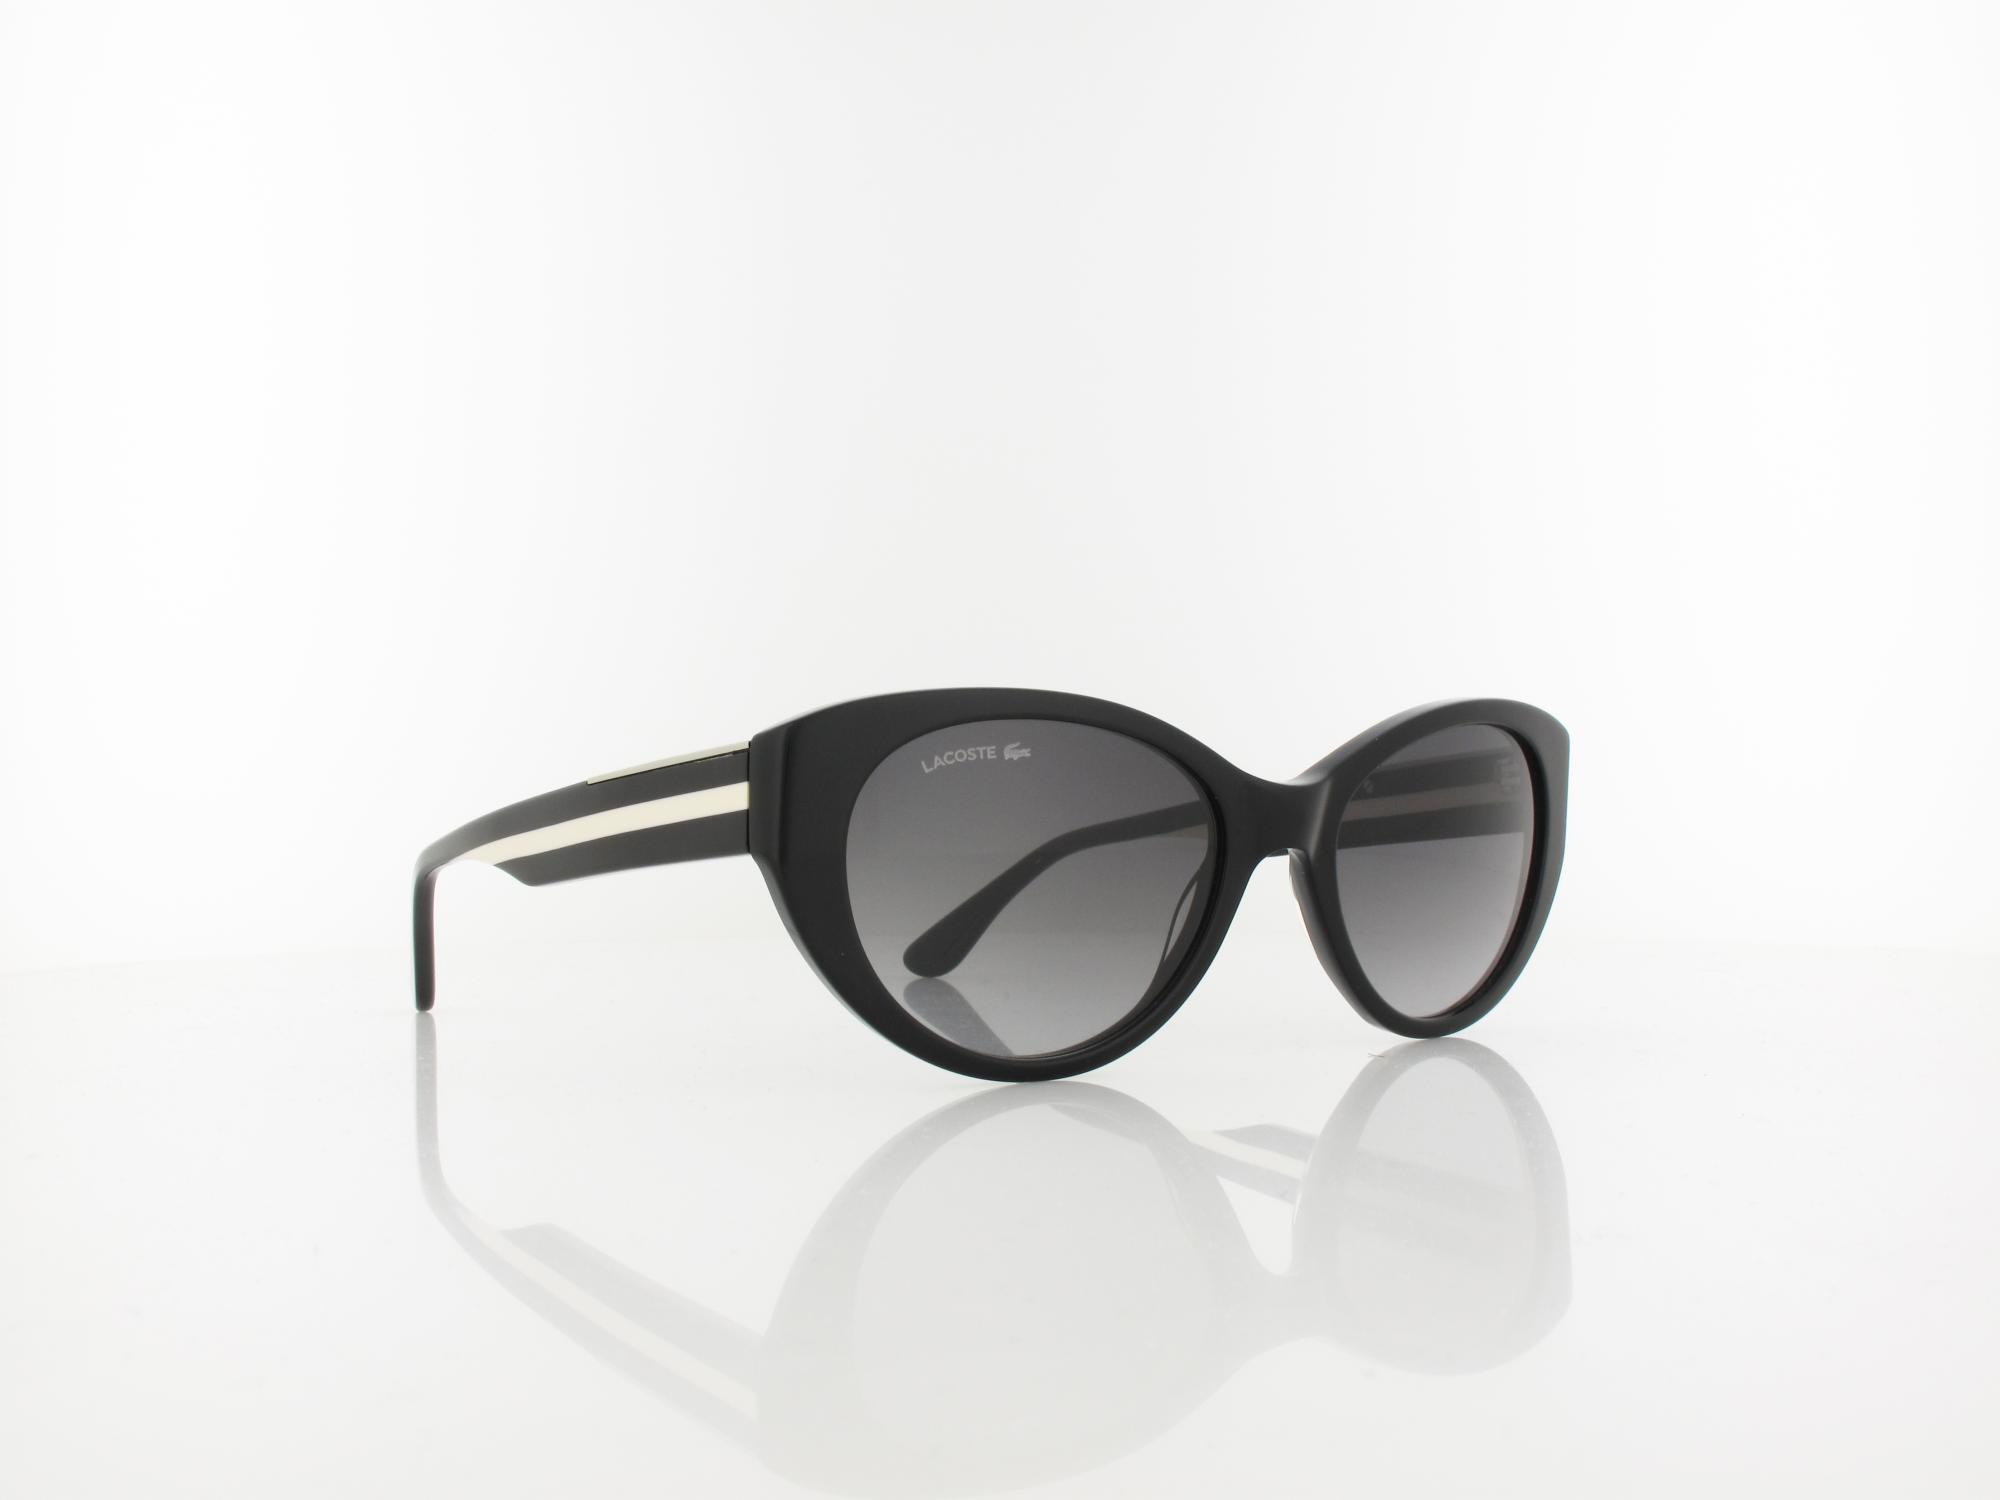 Lacoste | L912S 001 53 | black / grey gradient